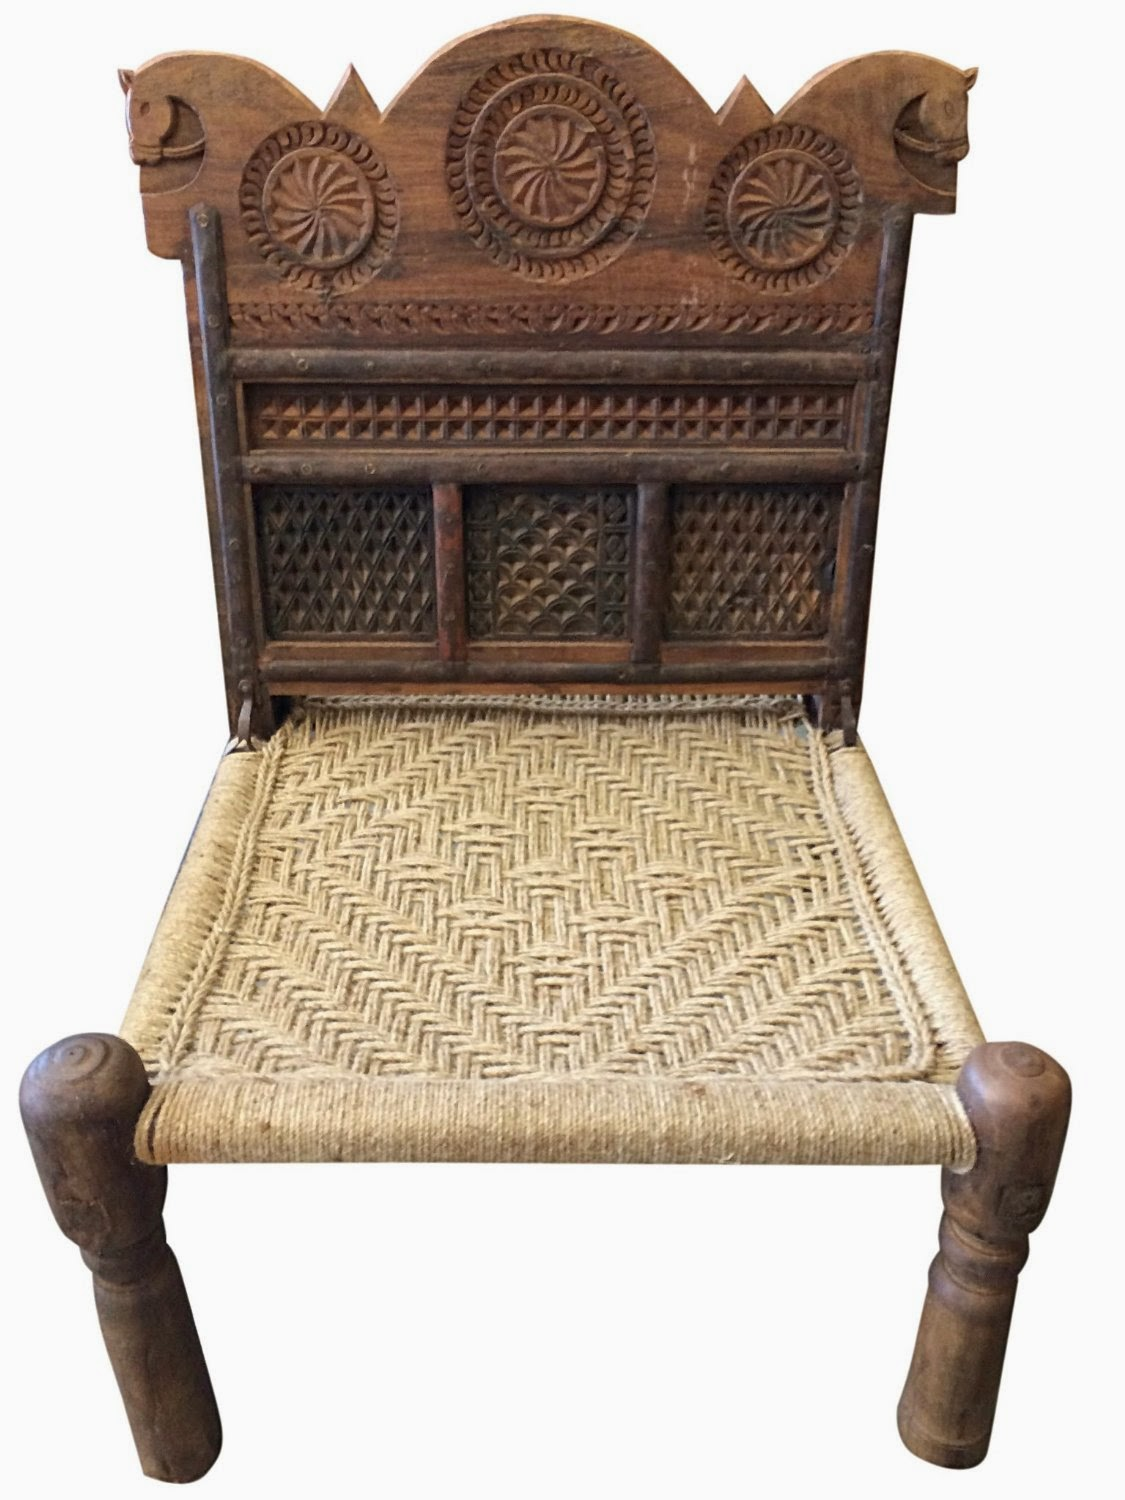 Old Wooden Furniture ~ Indian wooden furnitures antique furniture